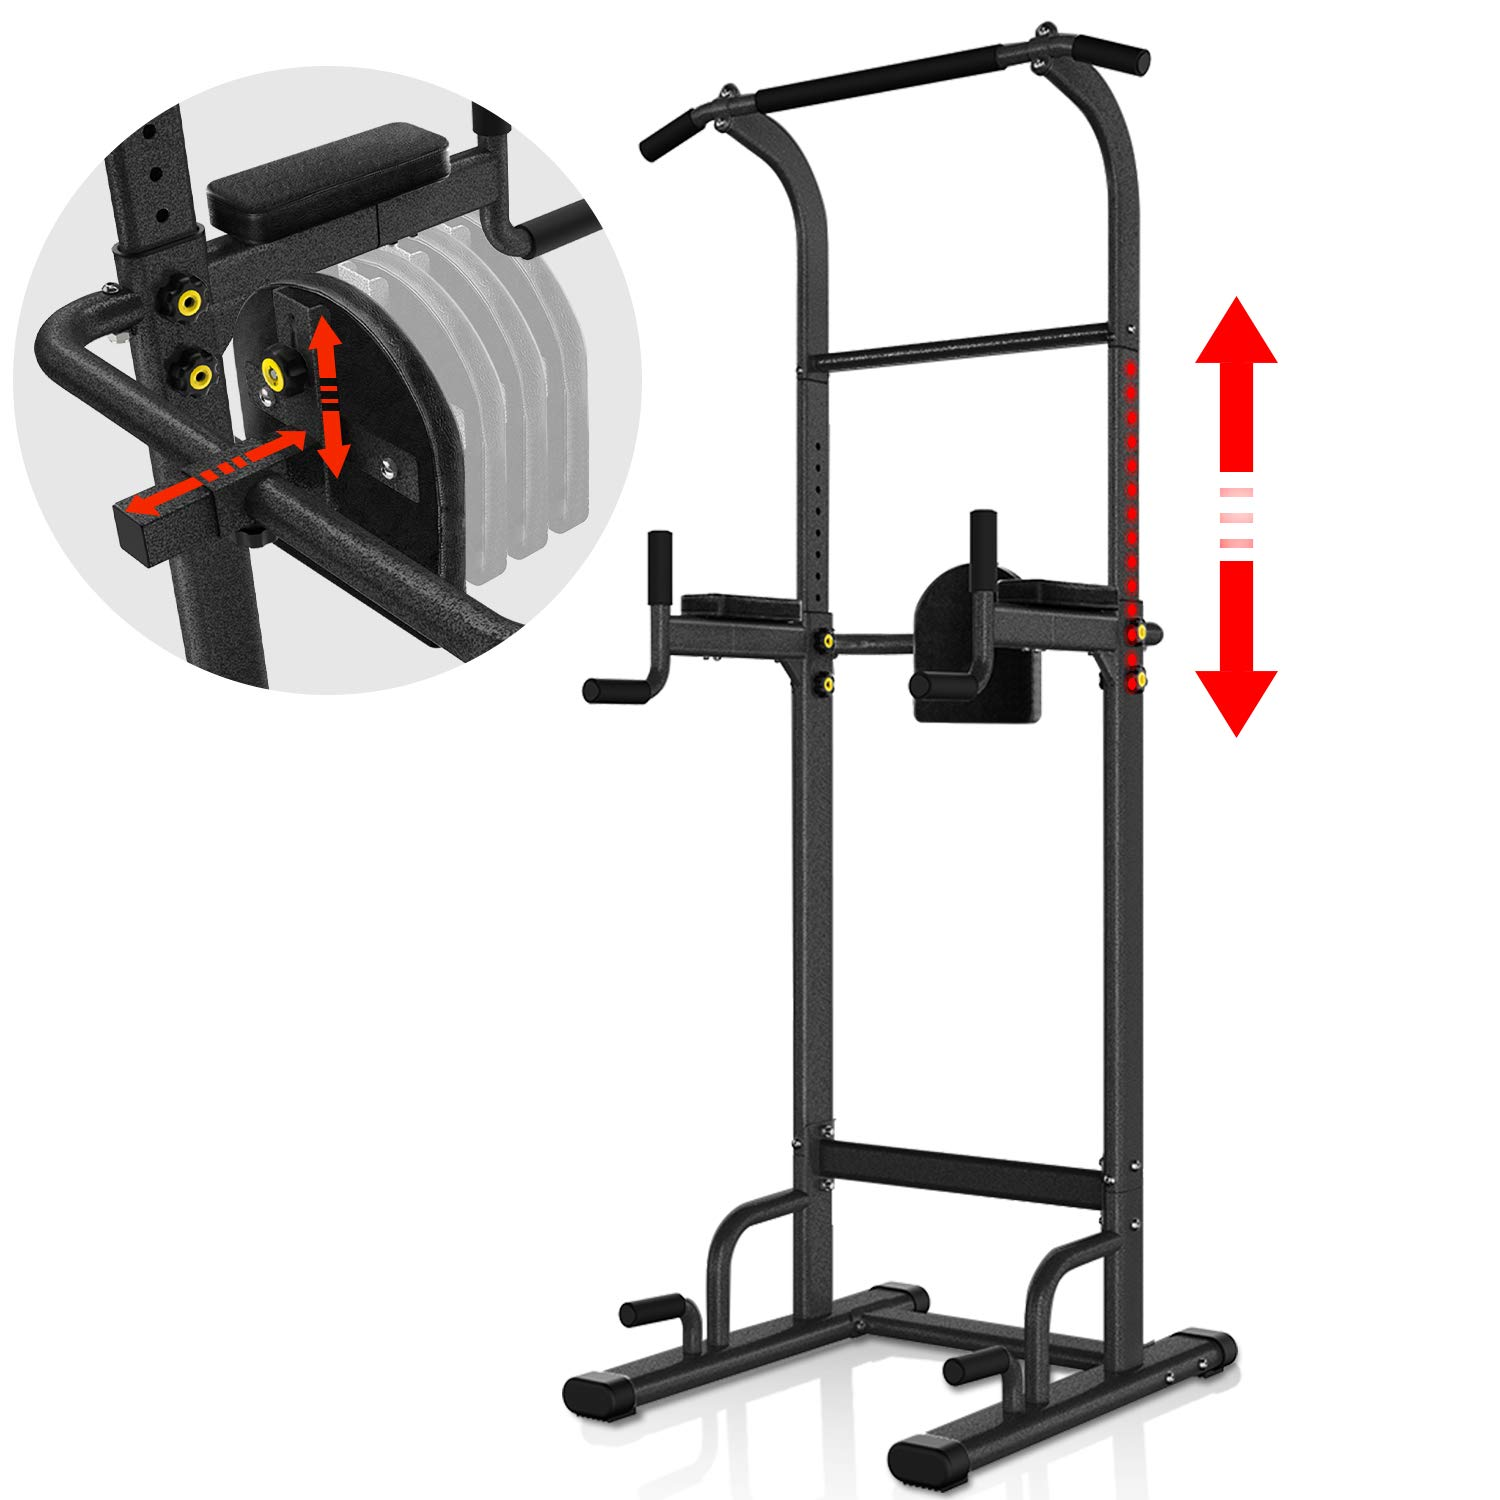 YouTen 700 lbs Rated Power Tower Multi-Function,Patent Backrest 3D Adjustable Pull Up Bar Free Standing for Home Fitness Workout Dip Station Height Range 74.4-95